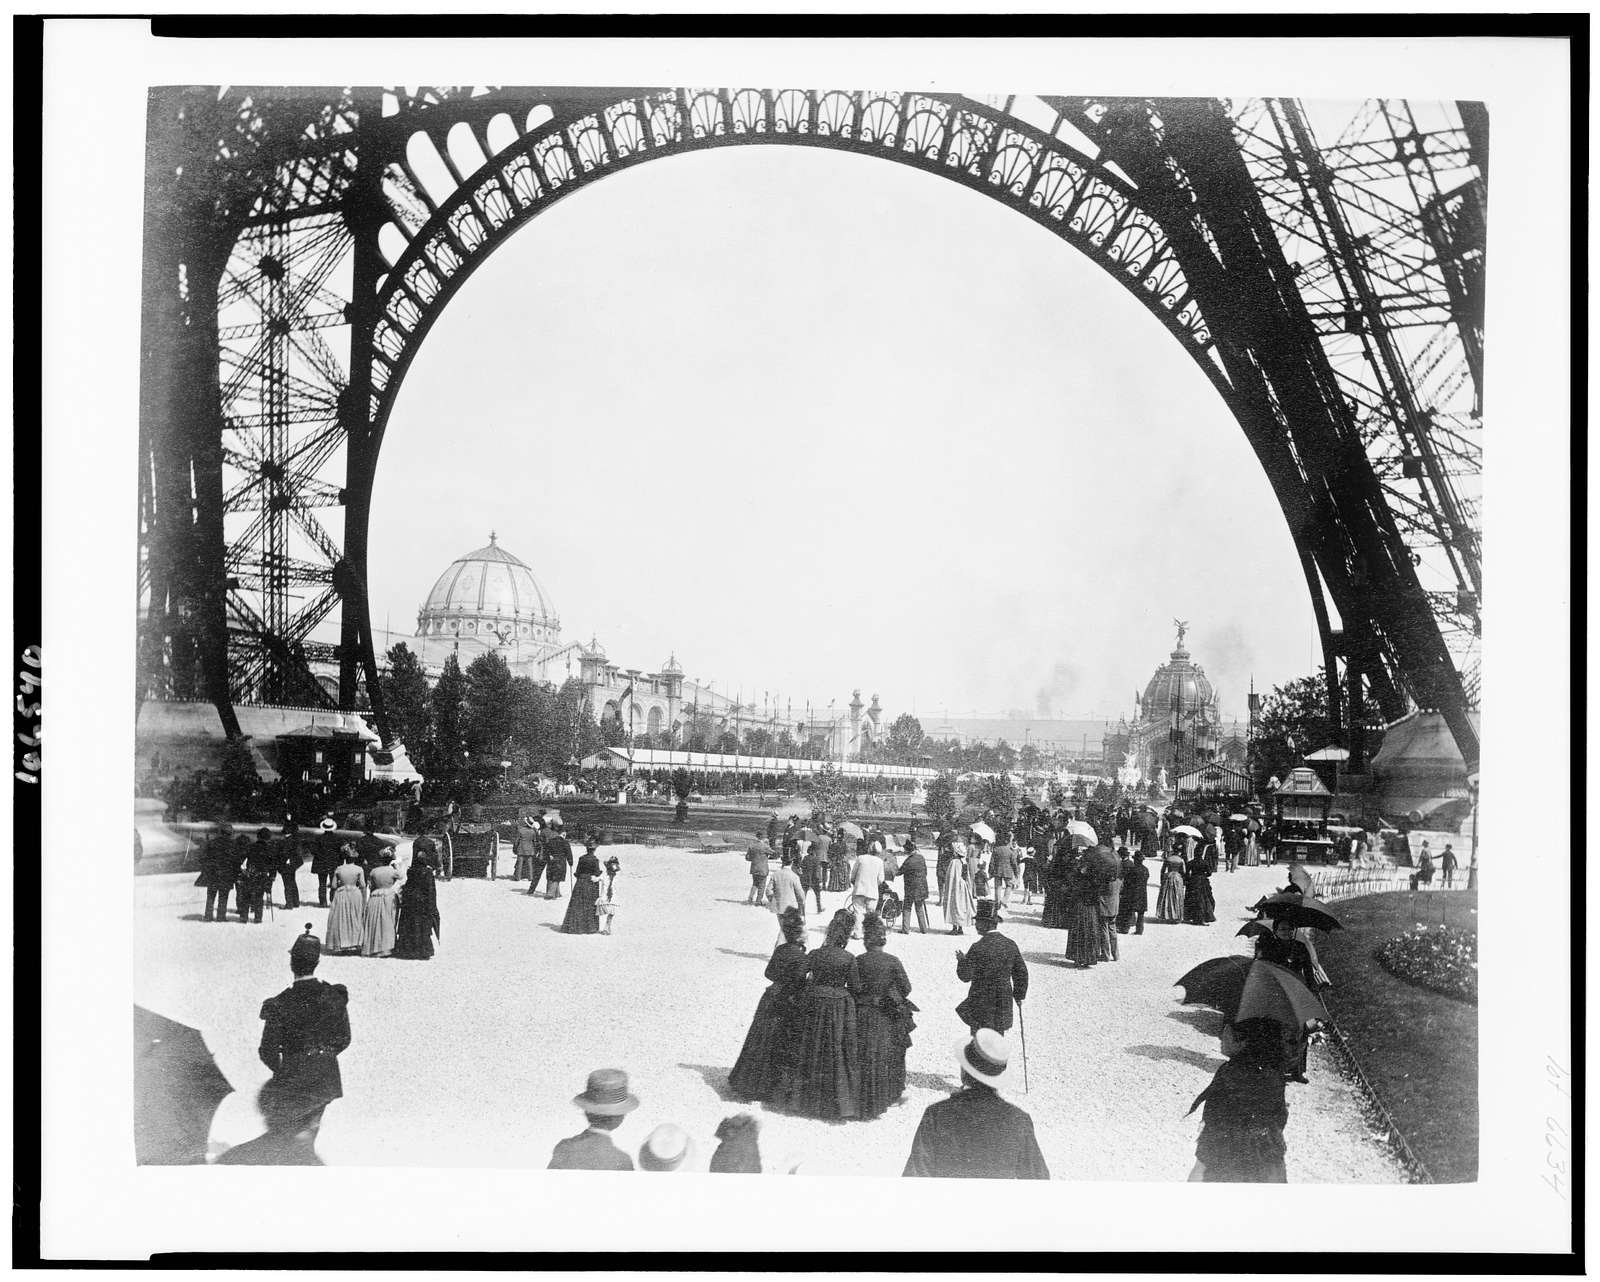 [View of the Palace of Fine Arts on left, and the Central Dome on right, seen through the base of the Eiffel Tower, with people walking under the Tower, Paris Exposition, 1889]